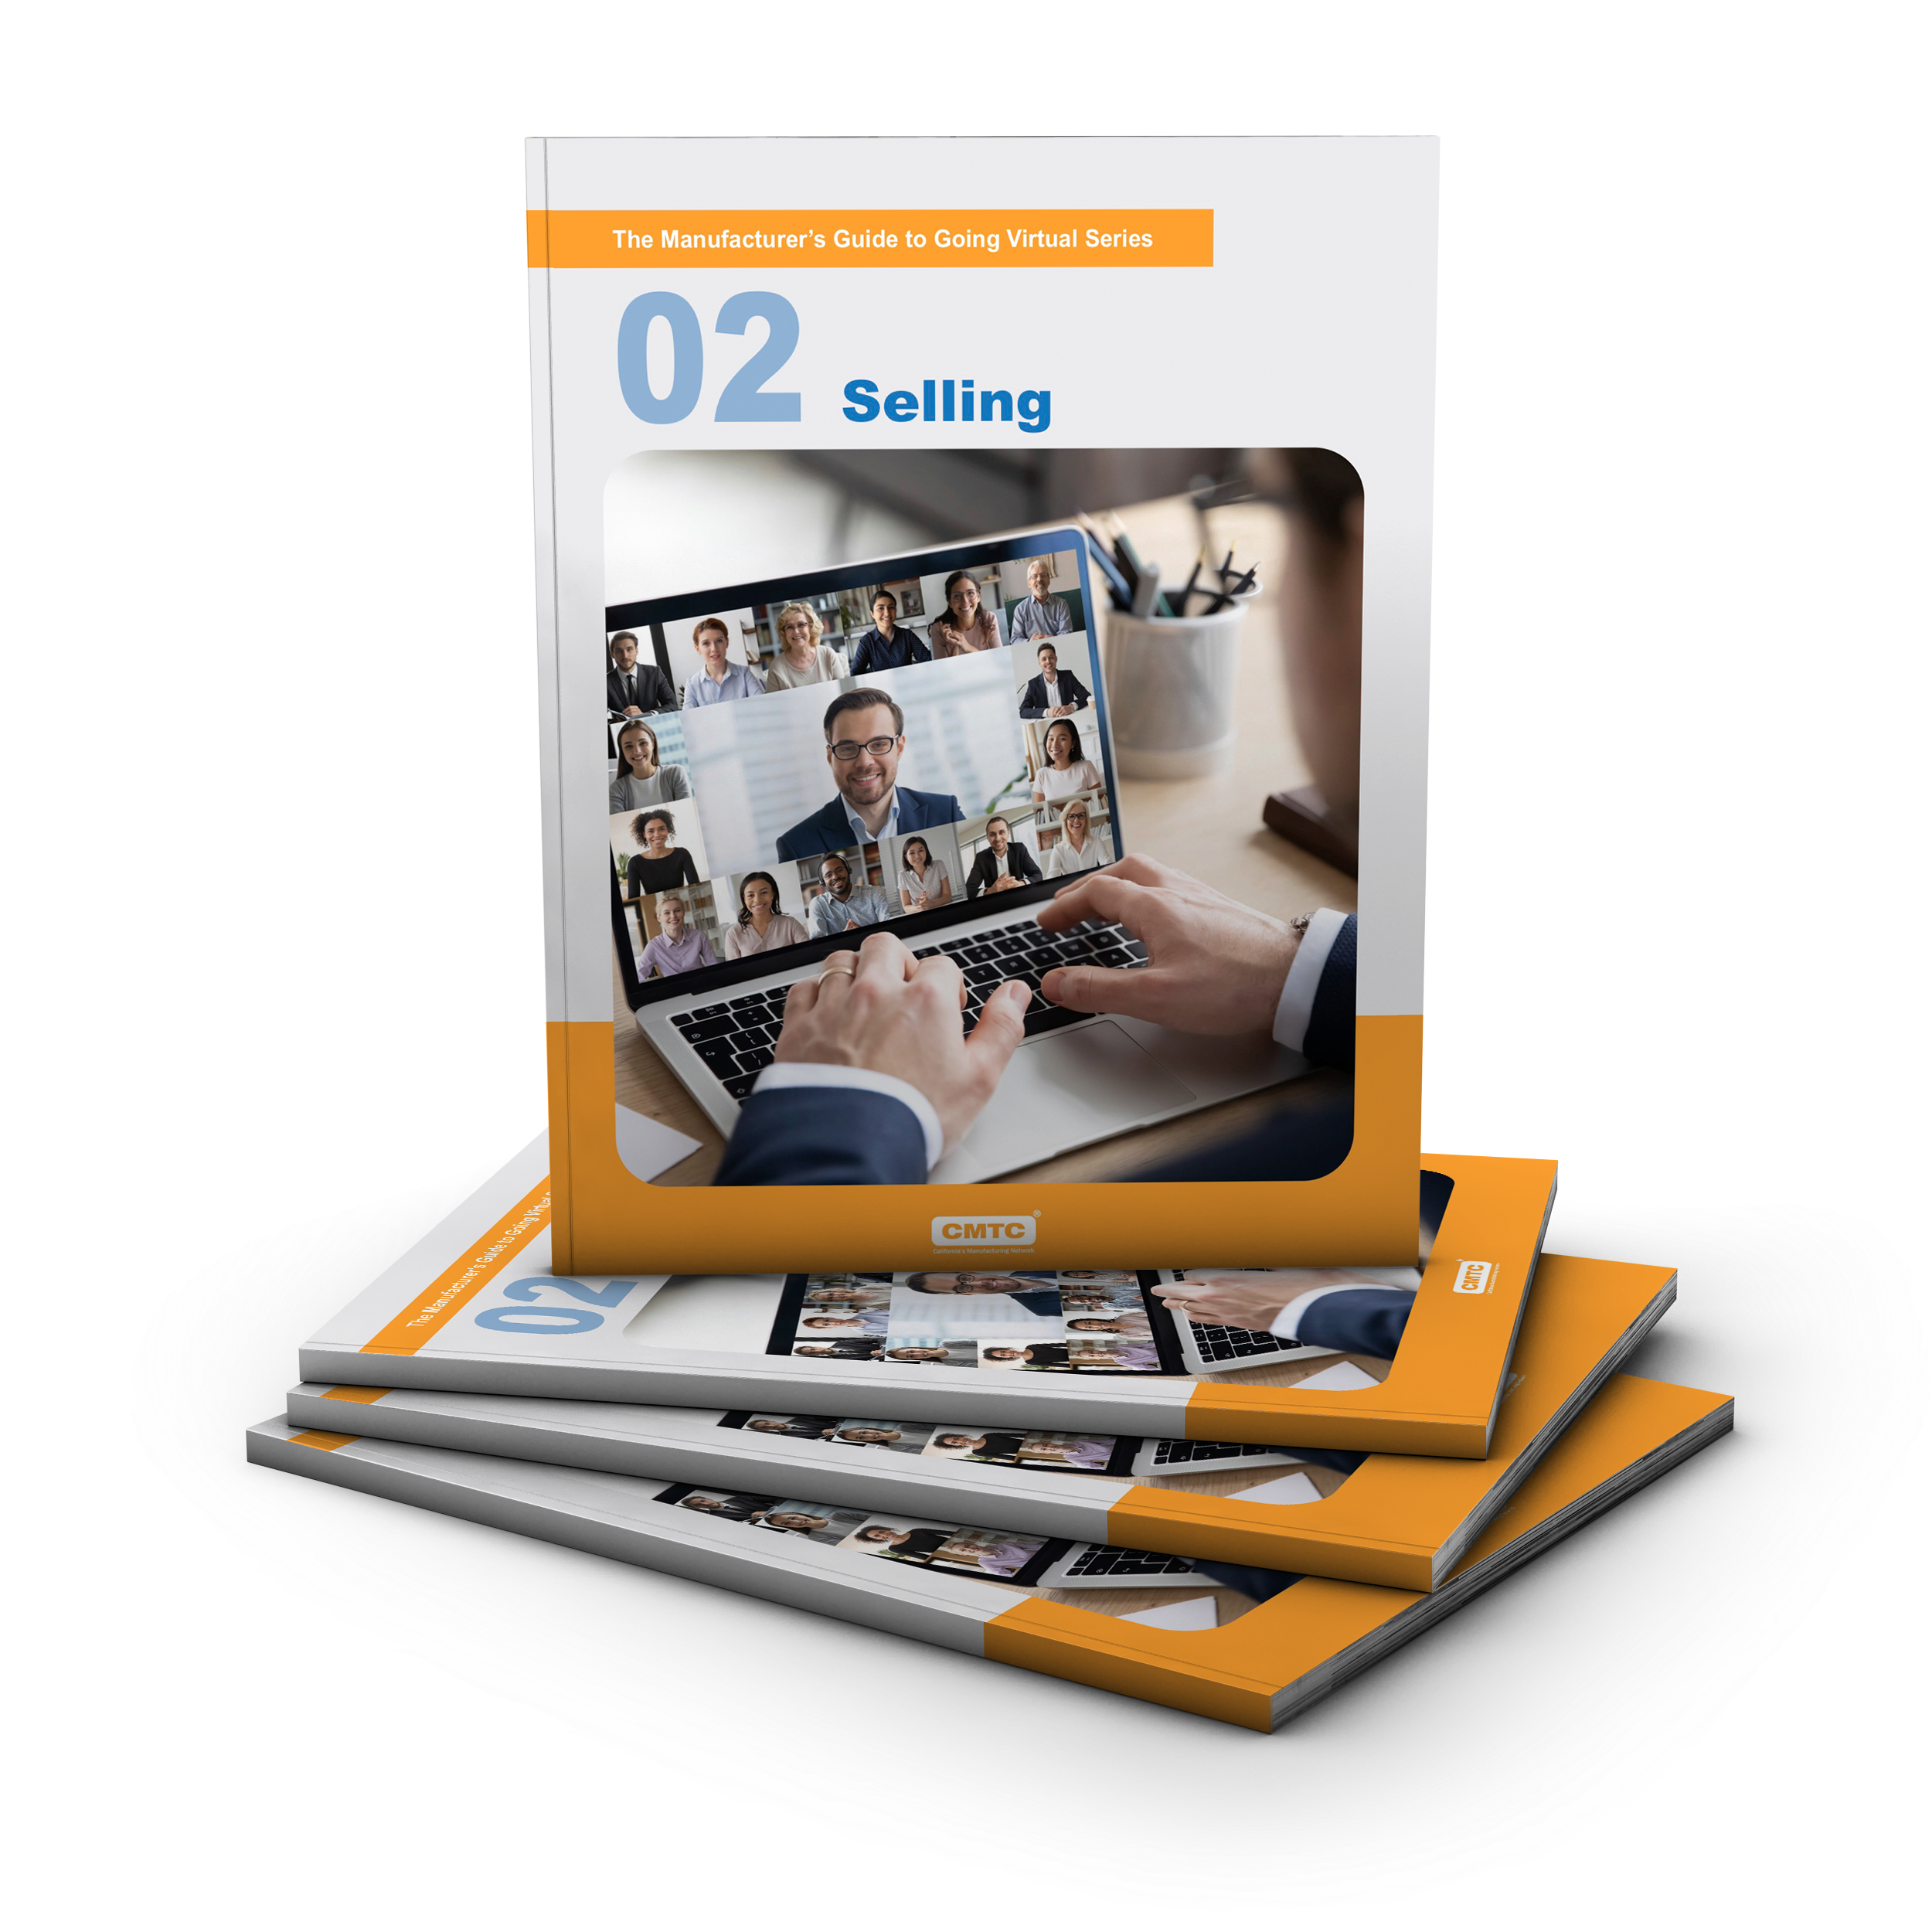 EB _ NEAP - The Manufacturers Guide to Going Virtual - Selling (ebook #2)_Mockup-1-1